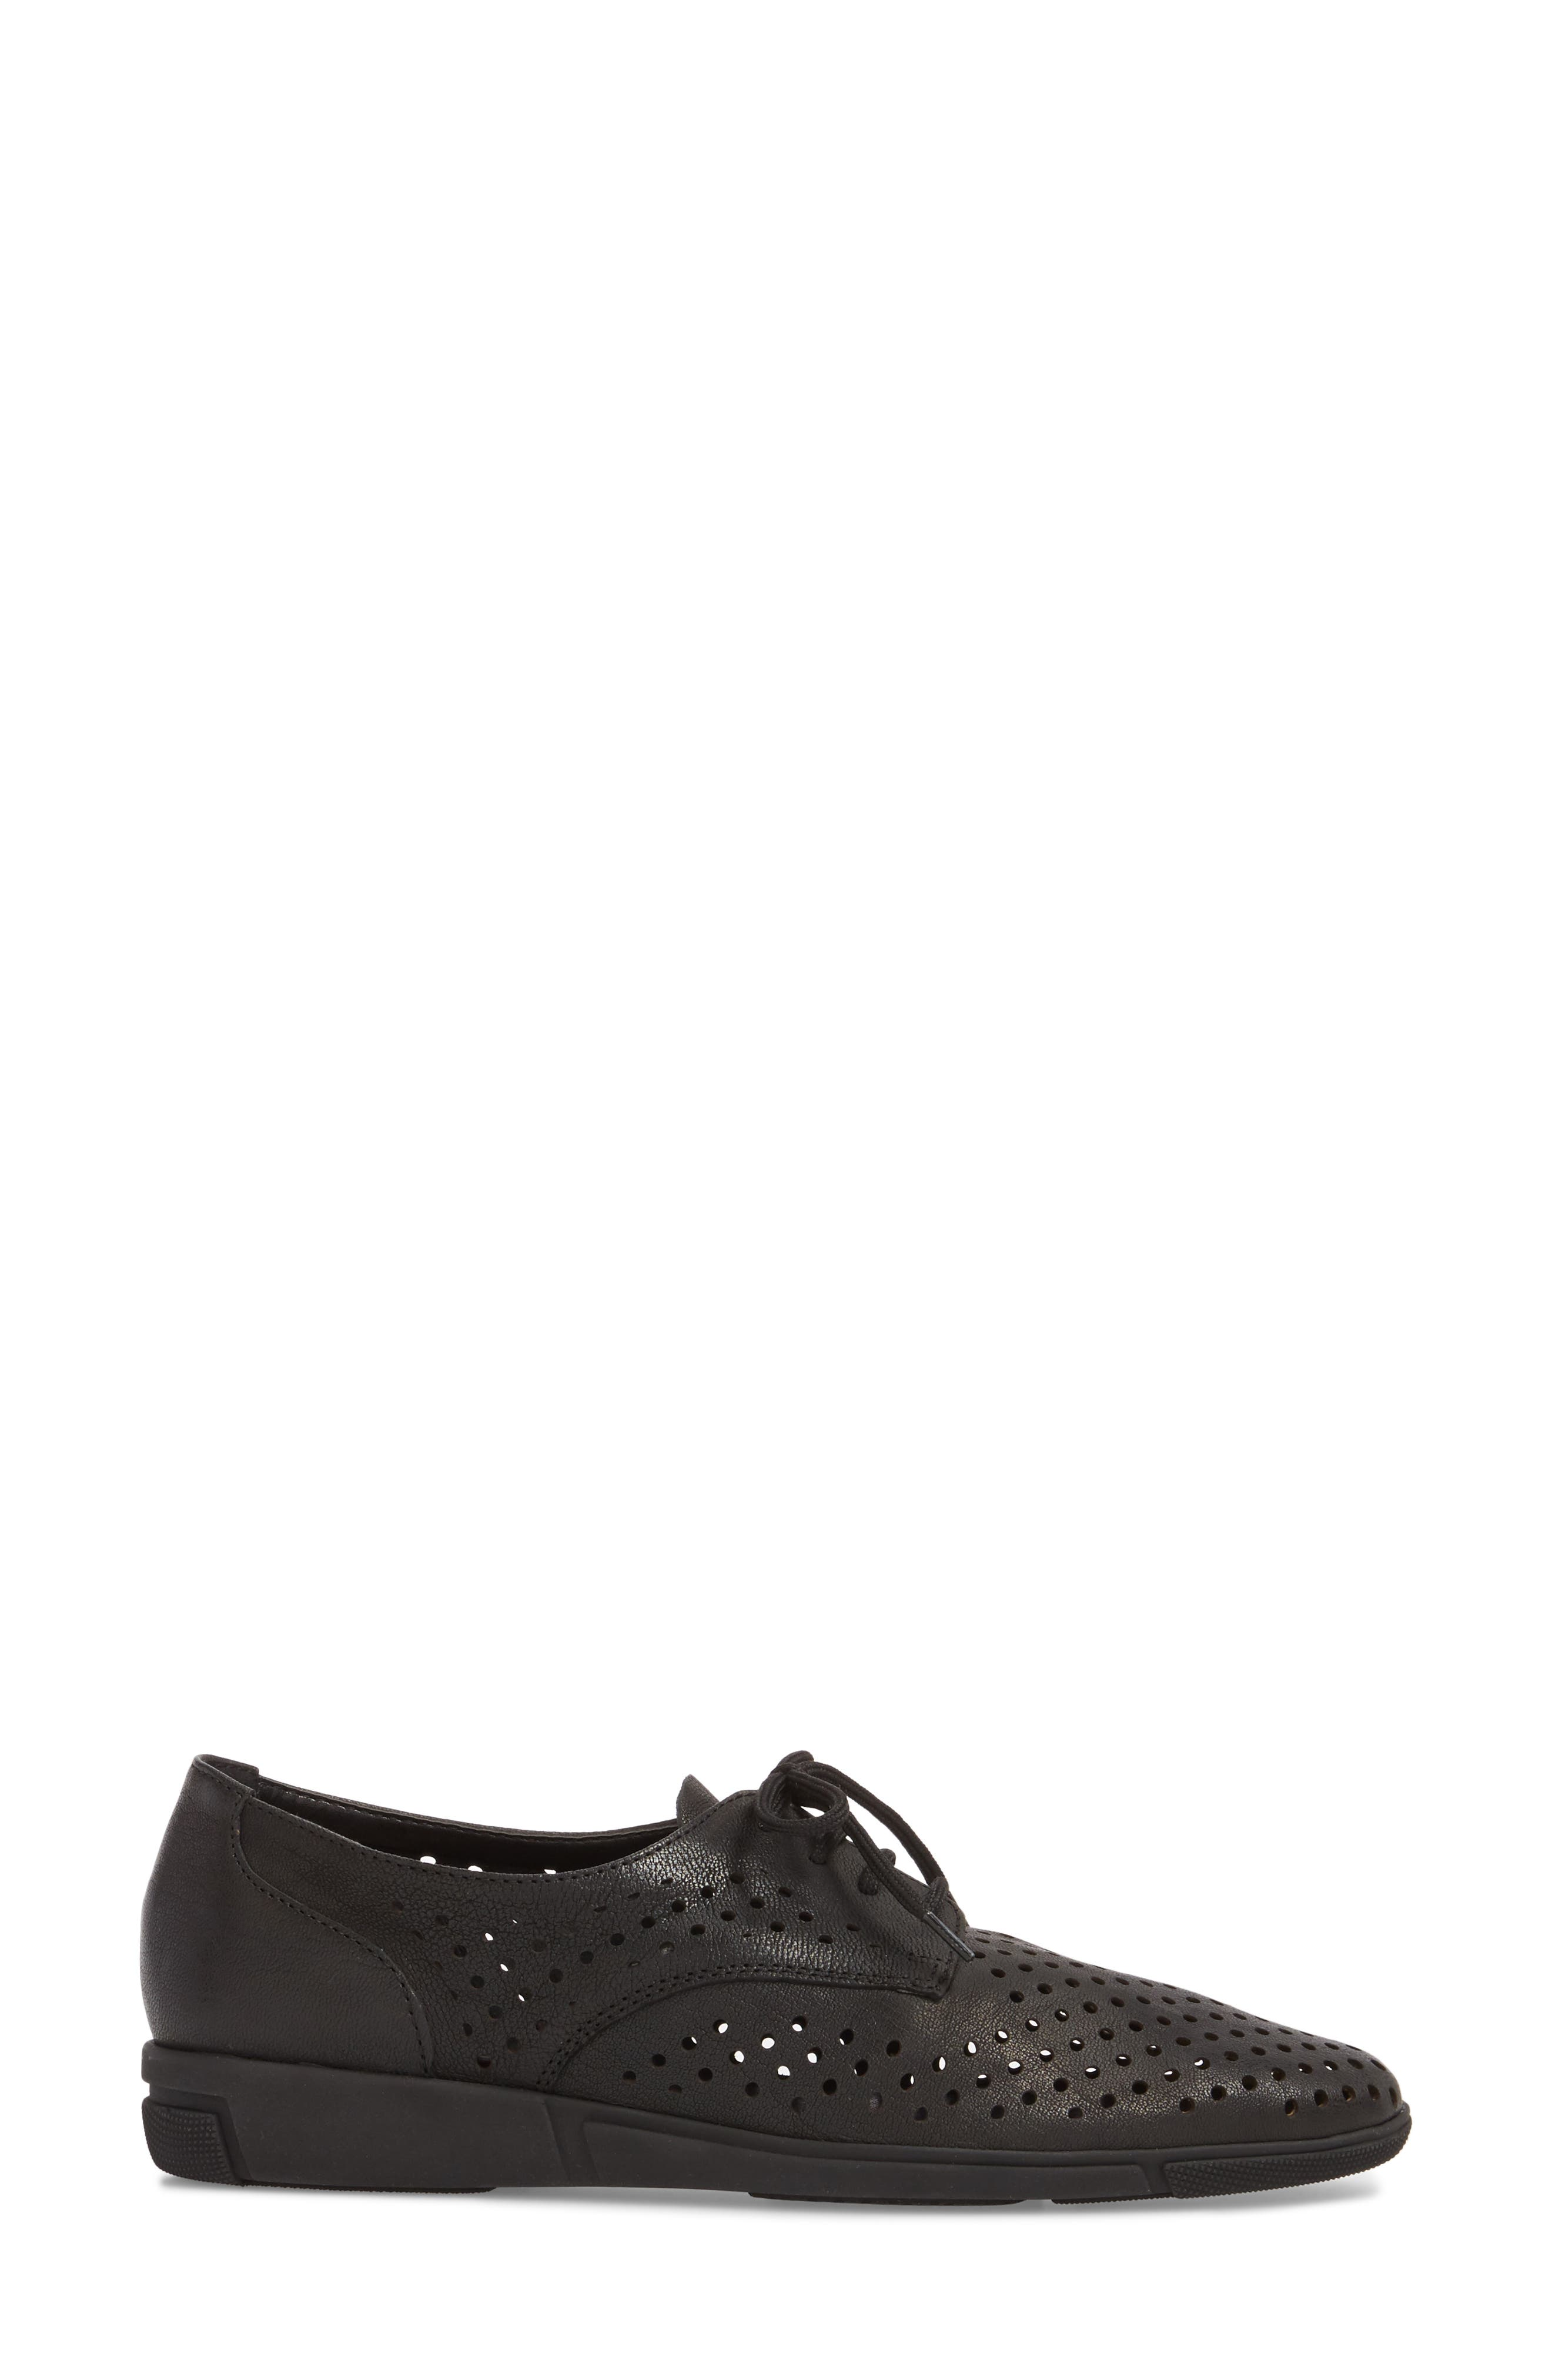 Dirce Perforated Oxford Flat,                             Alternate thumbnail 3, color,                             001